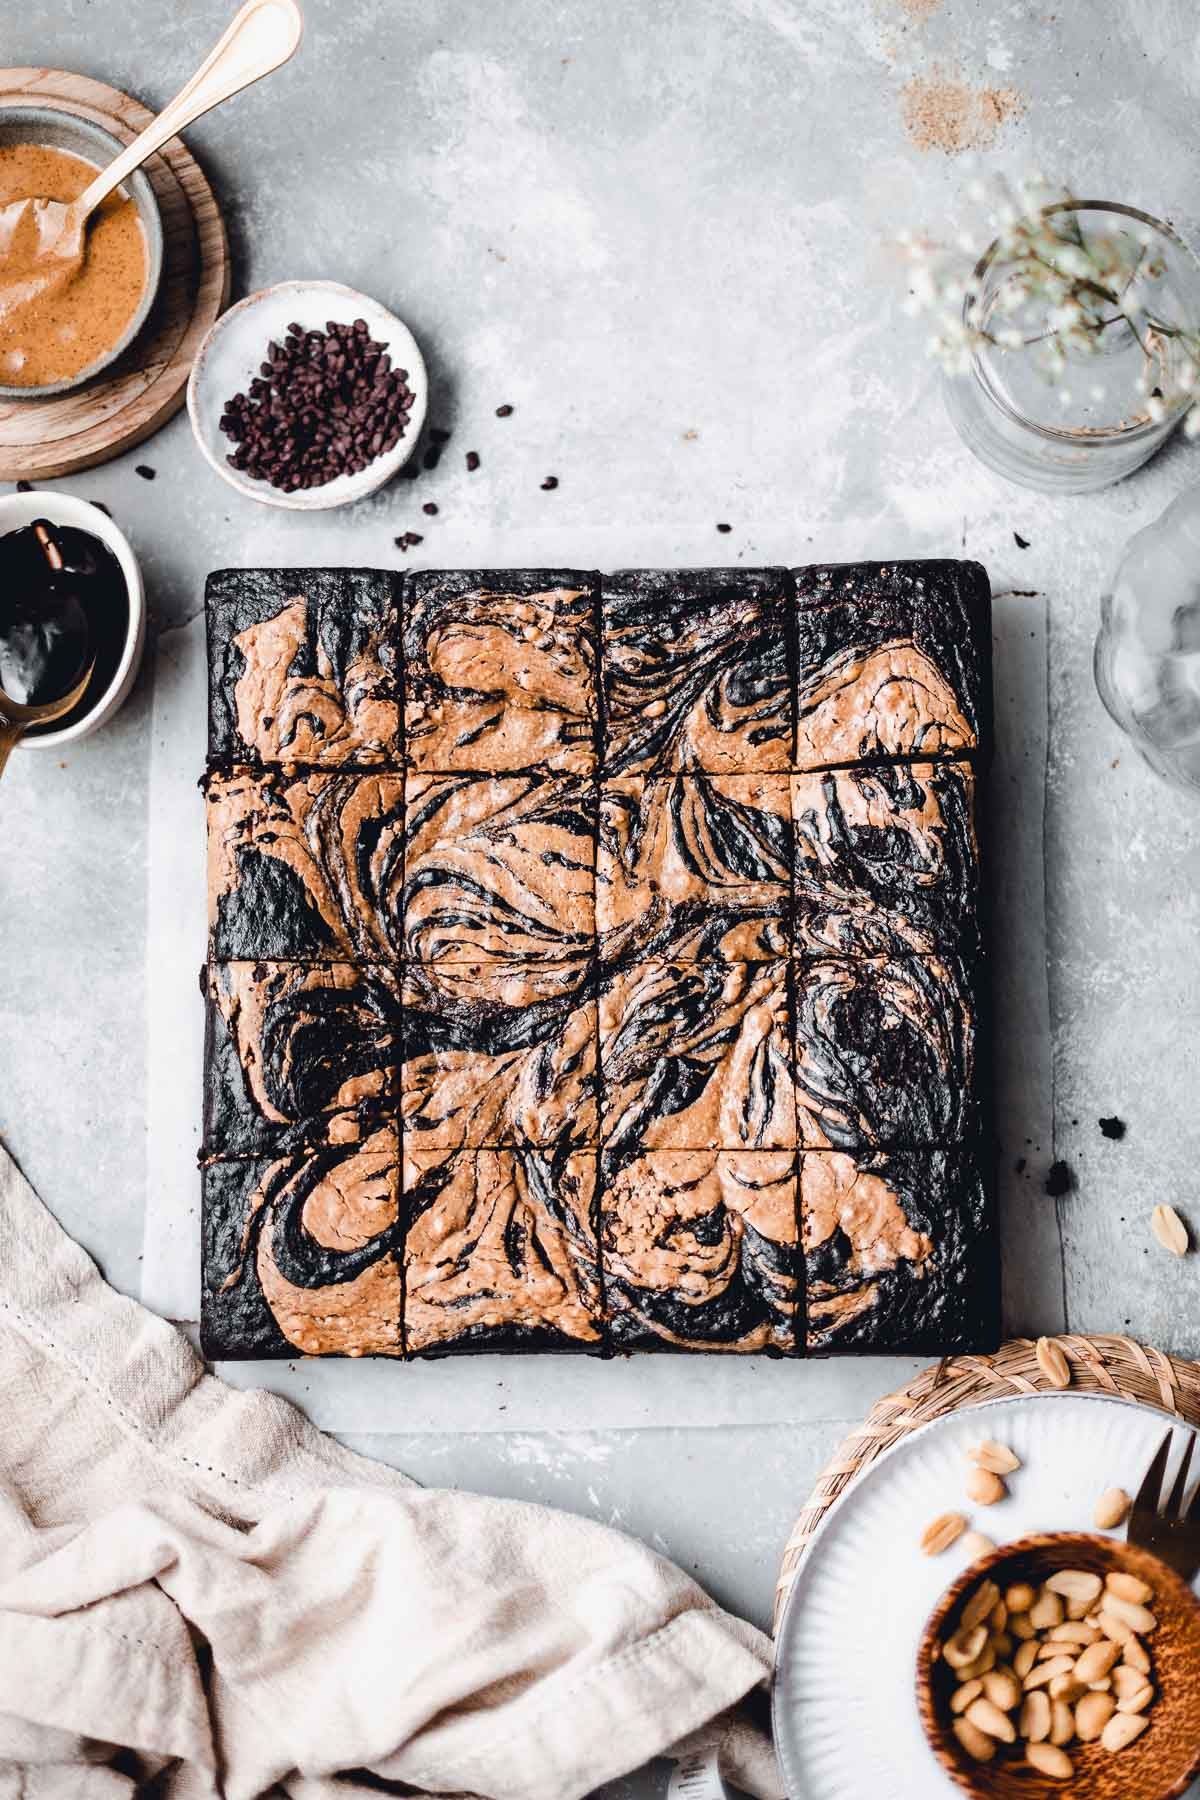 An overhead view of chocolate brownie cut into 16 equal pieces.